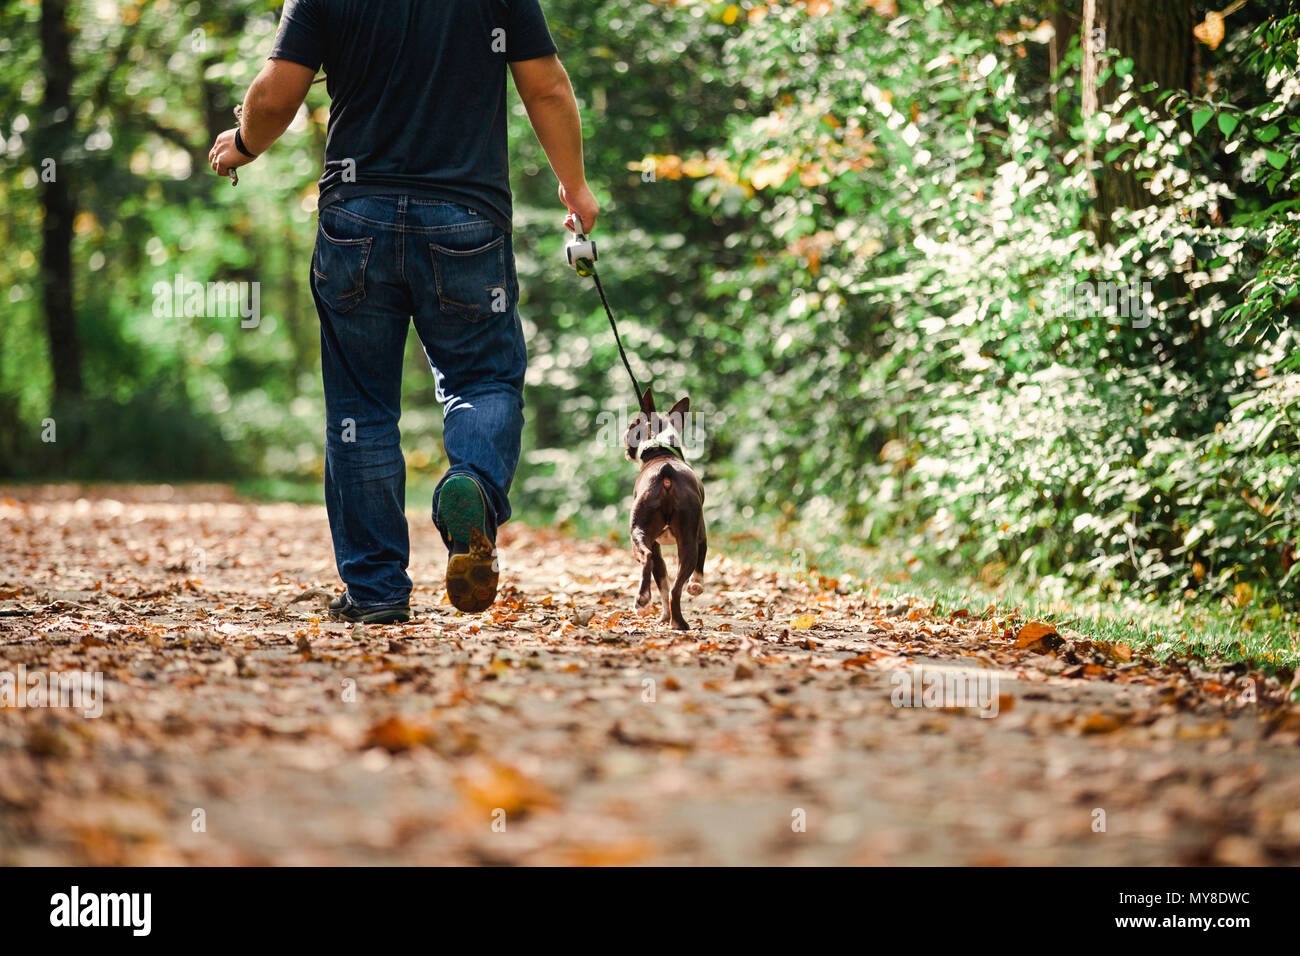 Man walking dog in rural setting, low section, rear view - Stock Image